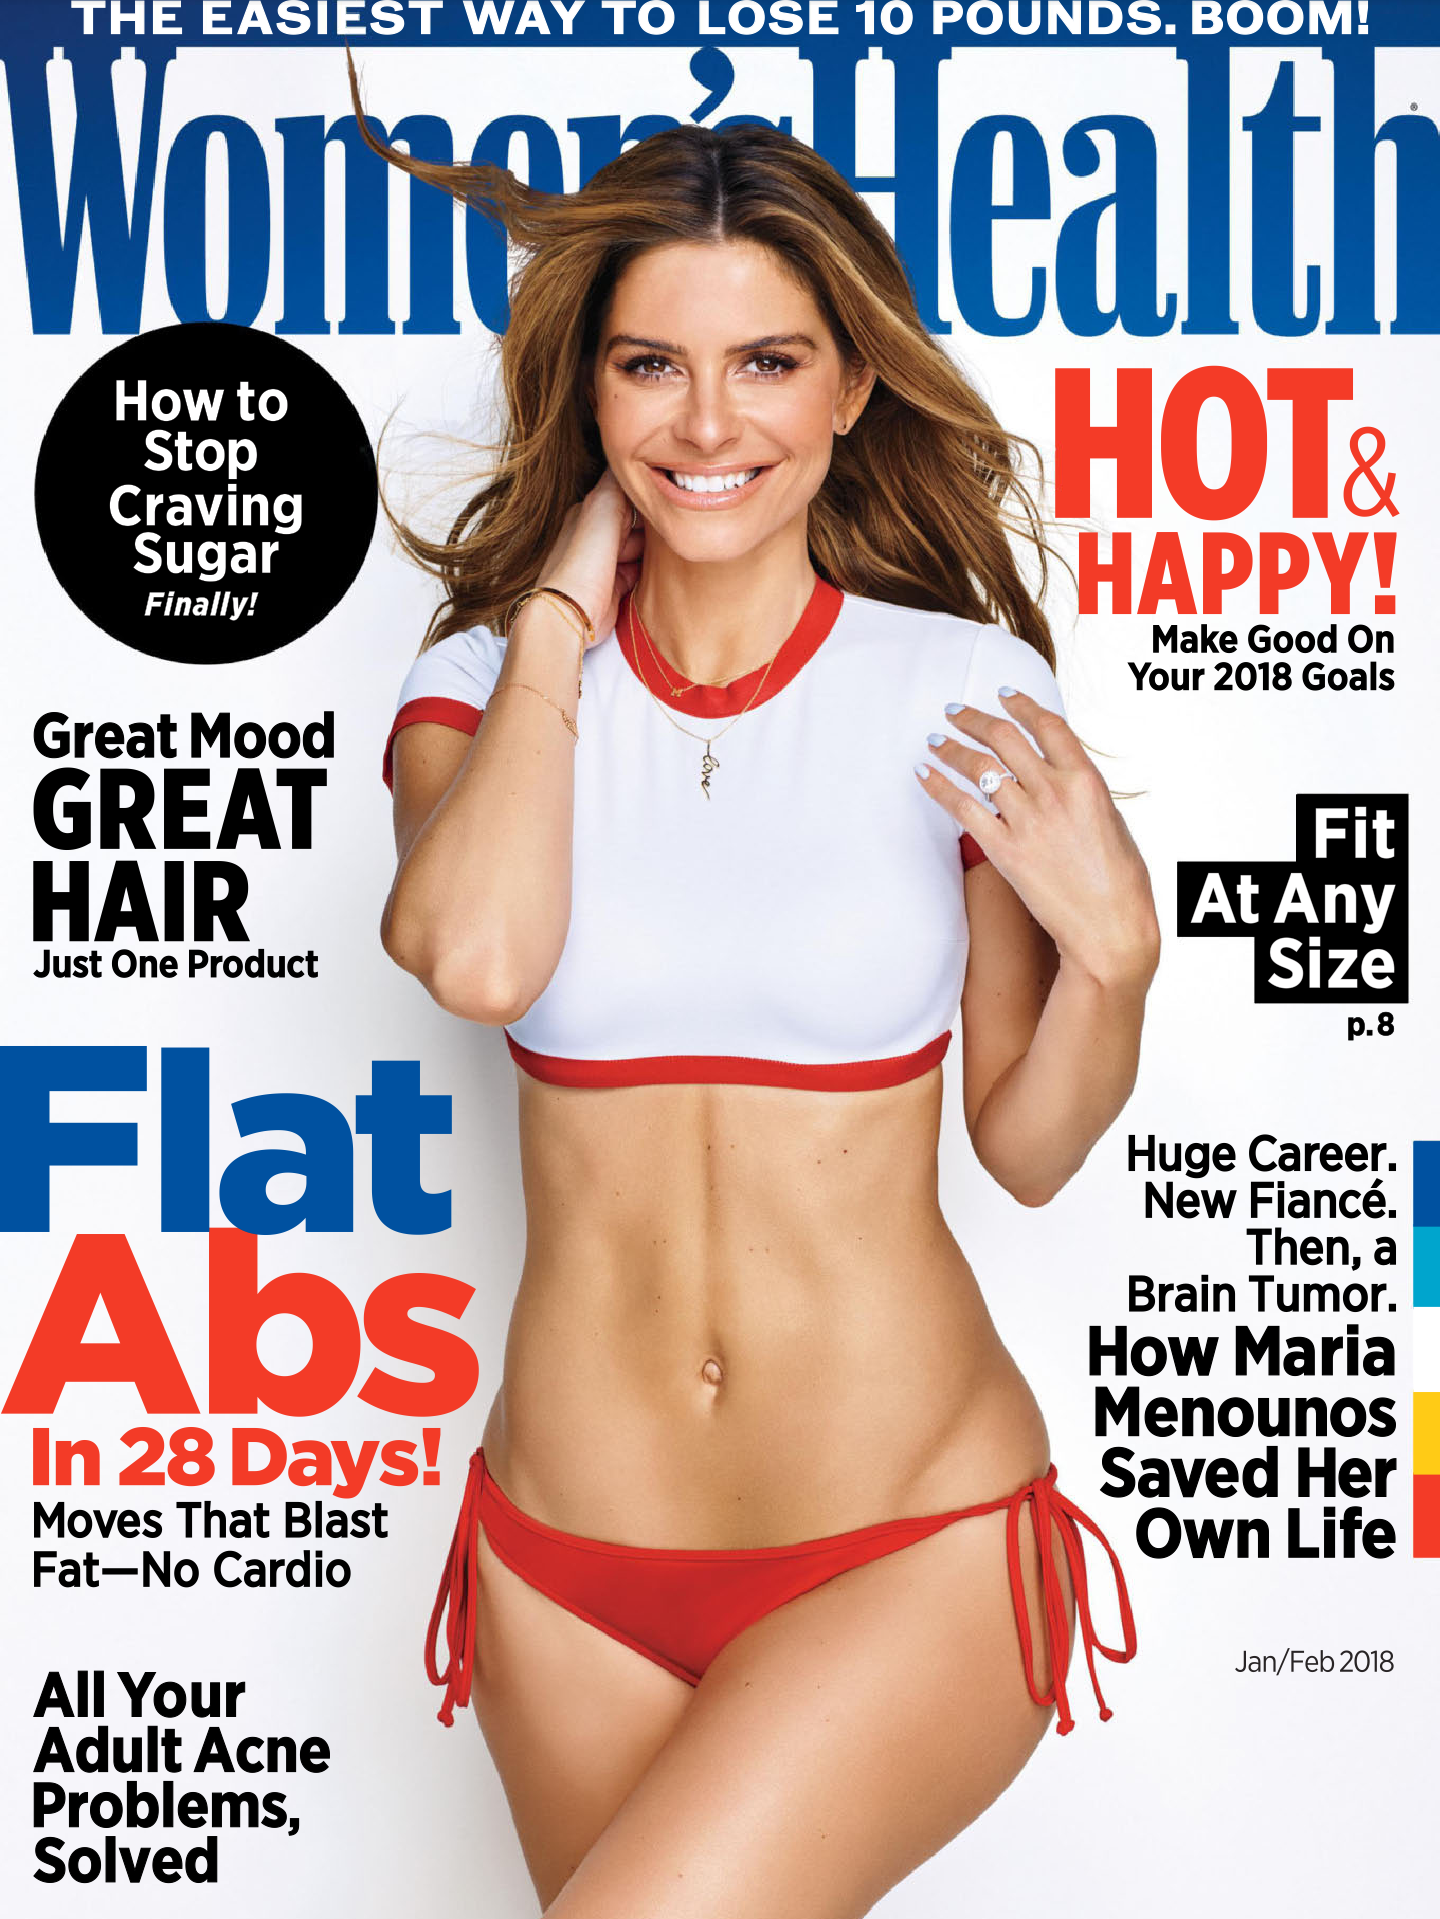 WOMEN'S HEALTH MAGAZINE (JAN/FEB 2018)